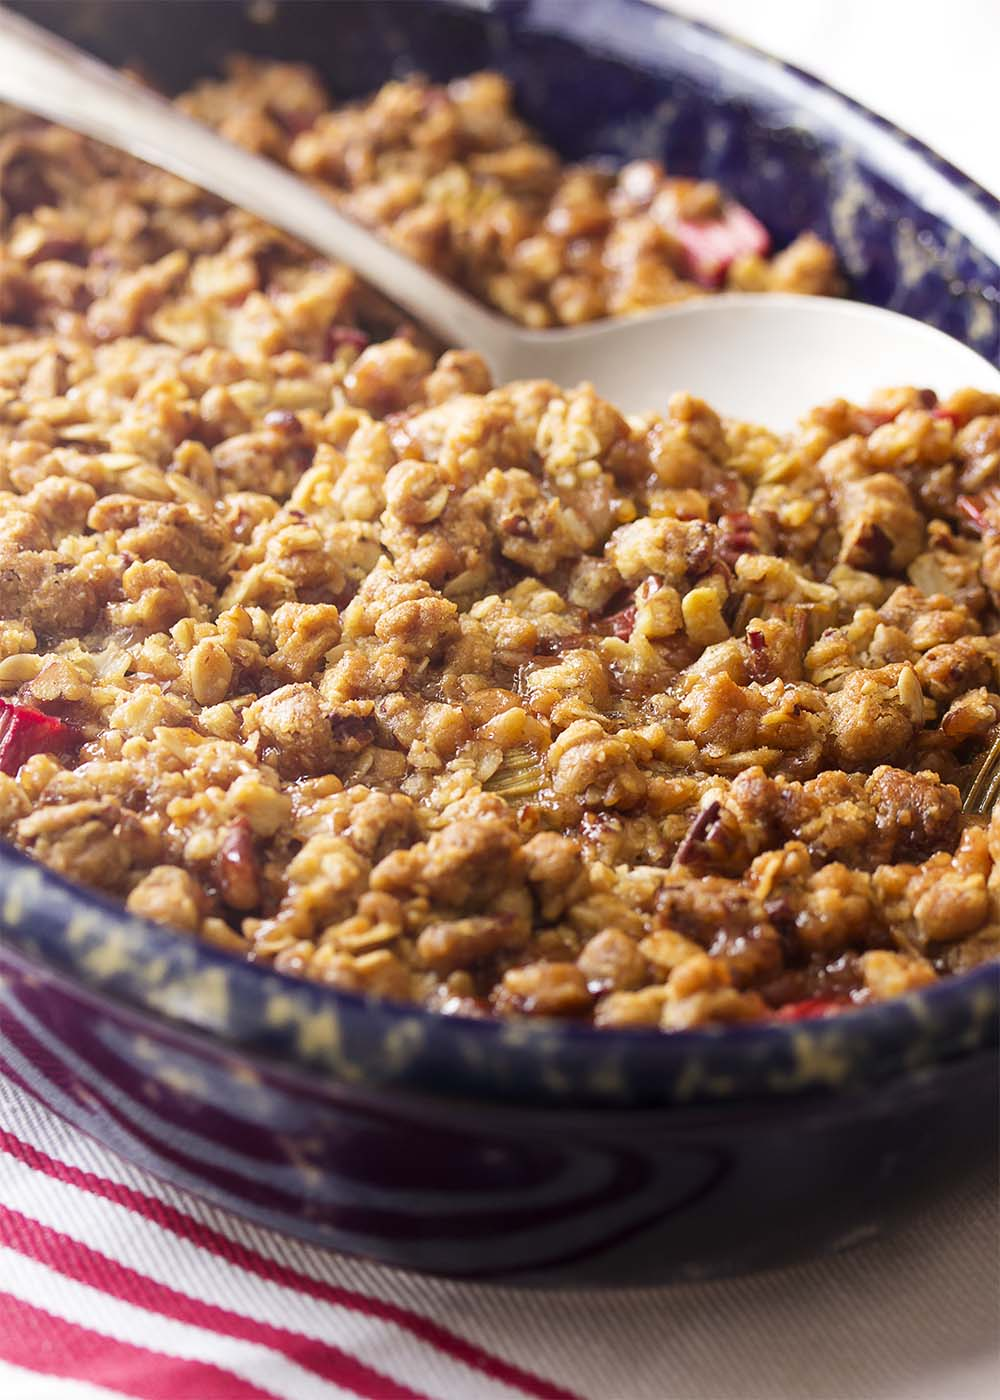 An oval gratin dish of rhubarb crisp with a golden brown oatmeal crumble topping.